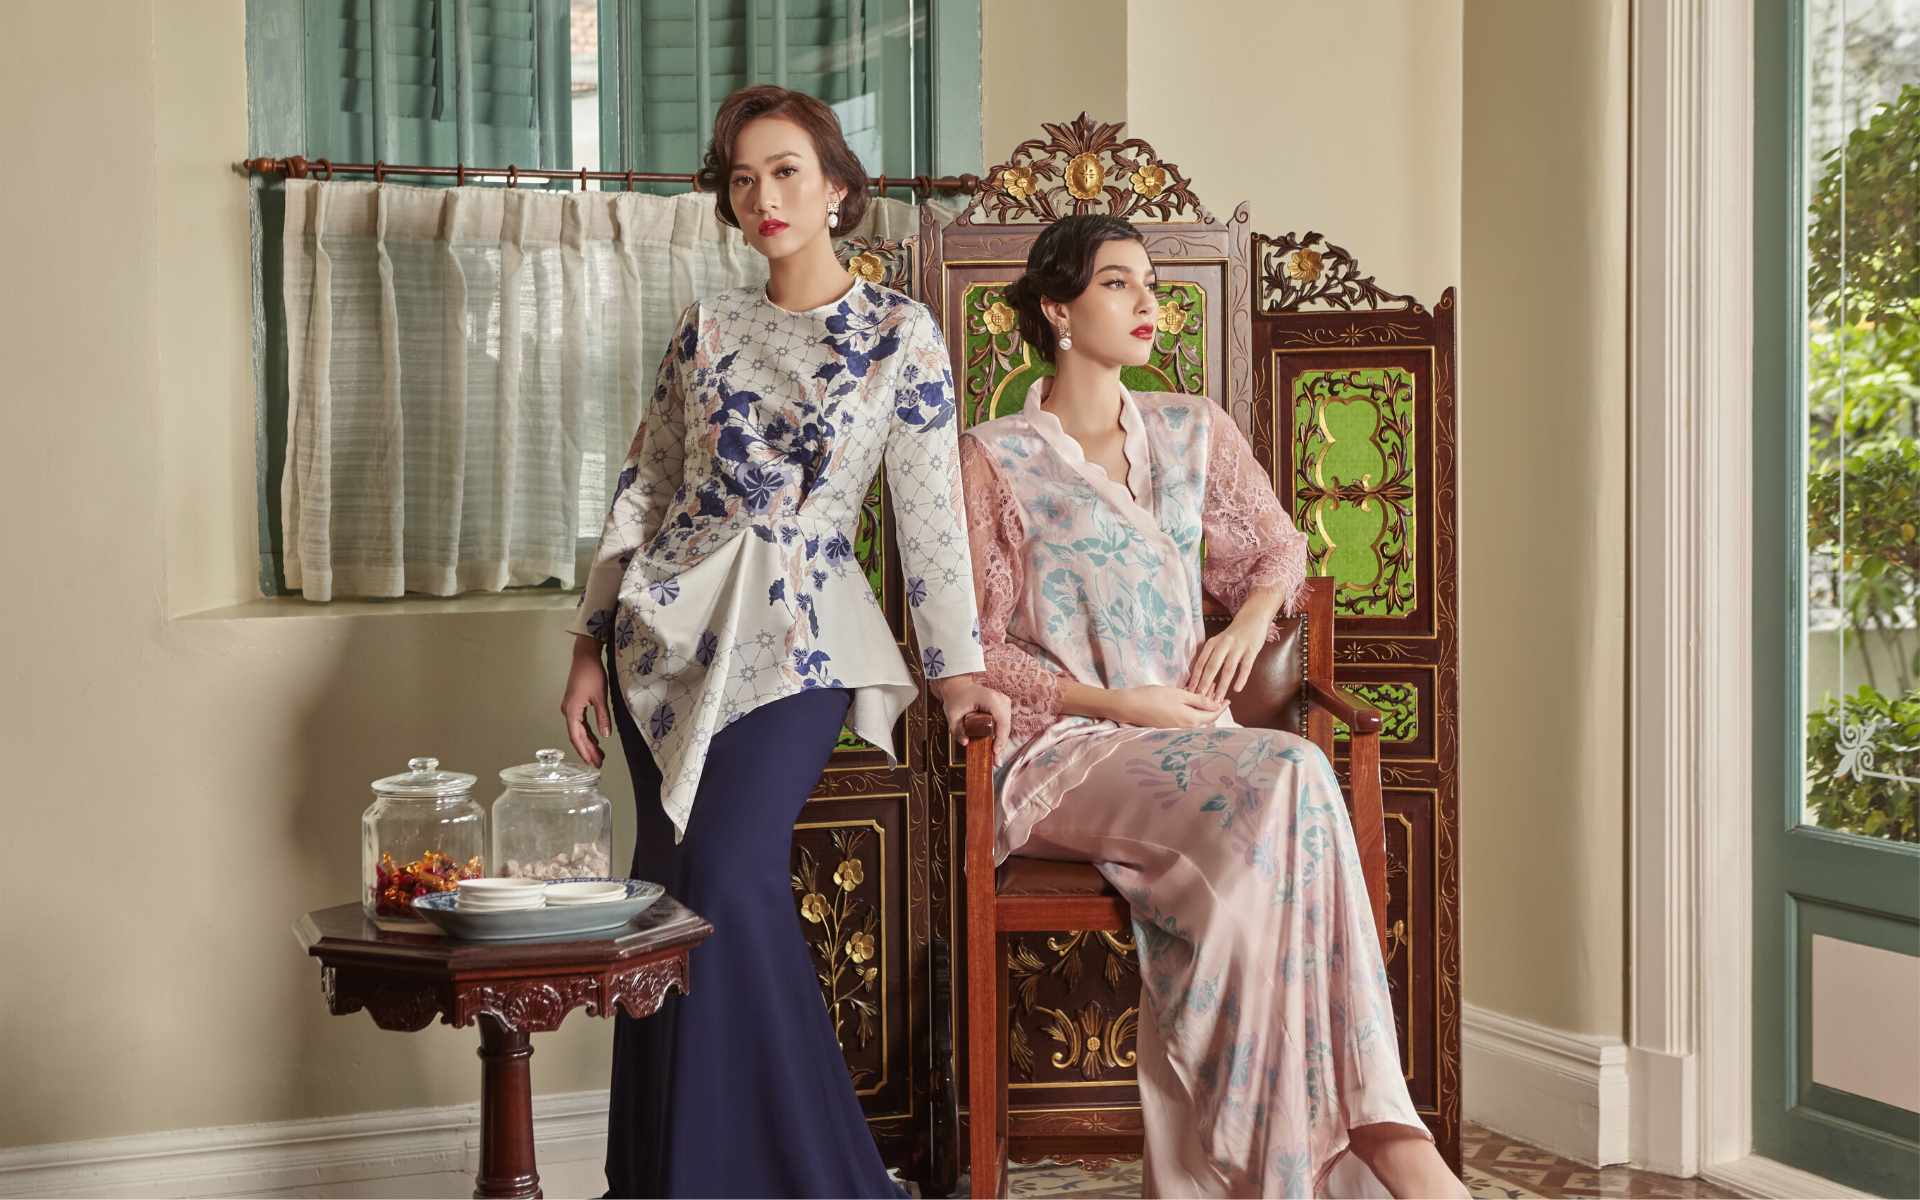 Dress Up For Hari Raya 2020 In New Outfits From These Malaysian Designers